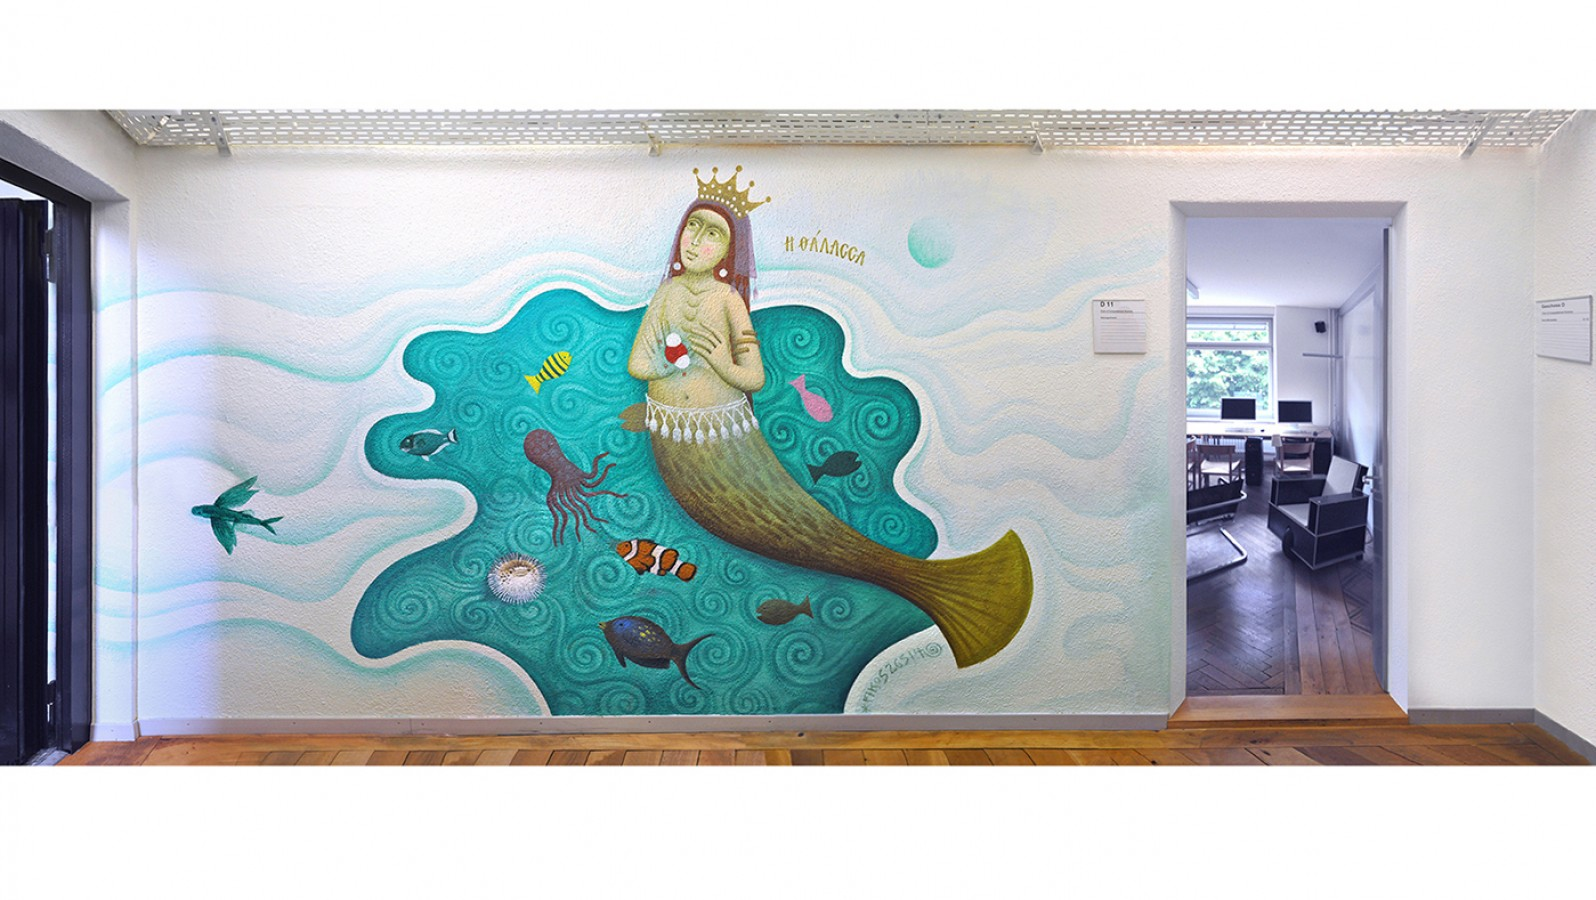 fikos-antonios-new-murals-at-eth-zurich-07